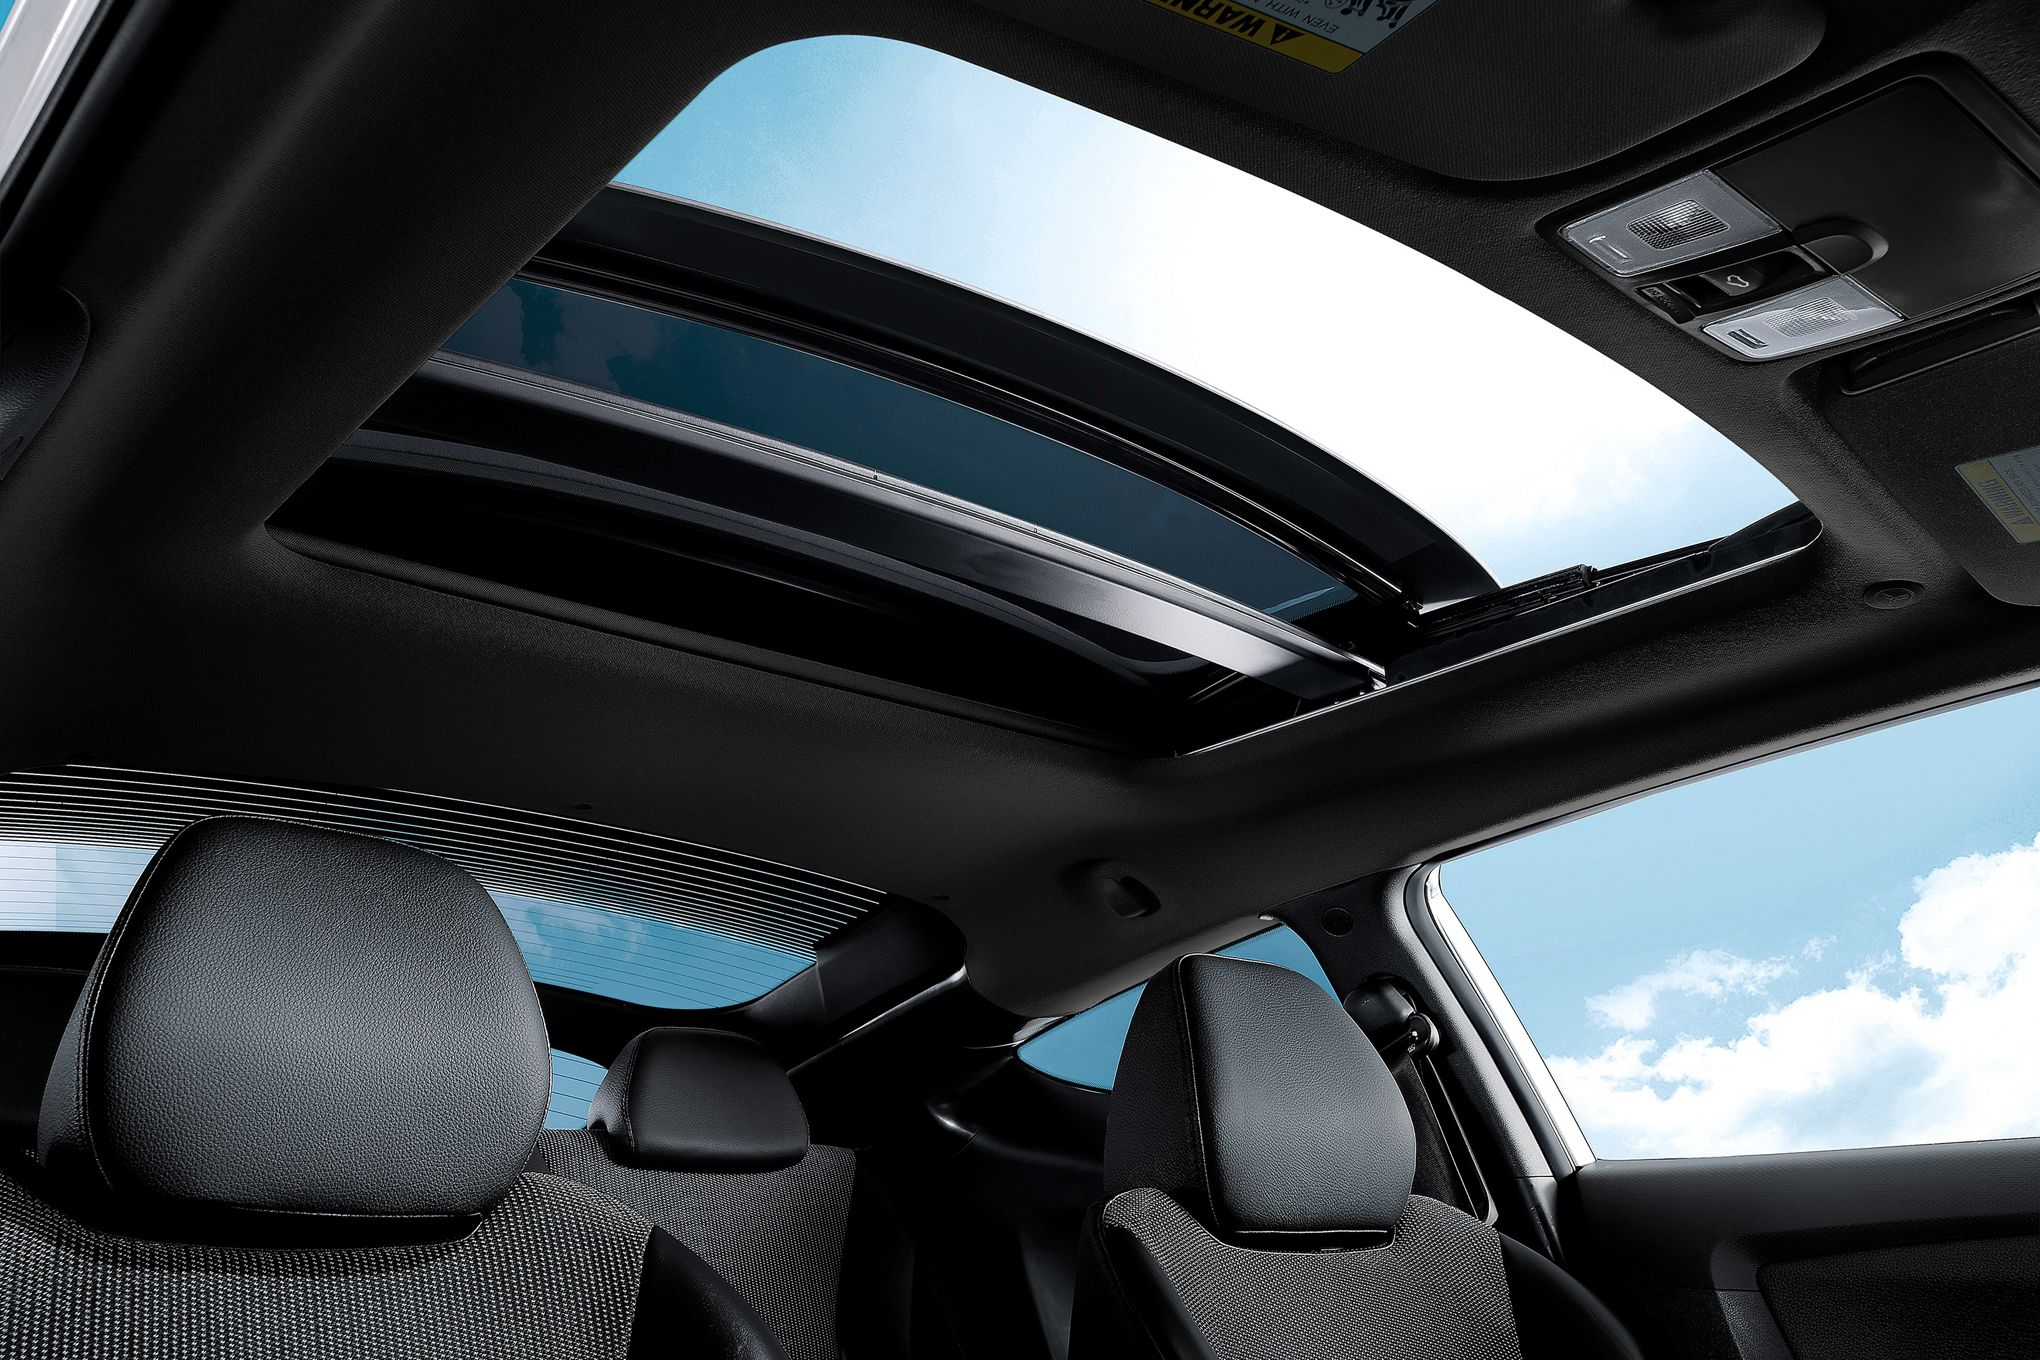 vehicles offering panoramic sunroofs for less than 50 000 motor trend rh motortrend com Aftermarket Power Moonroof Kit Power Moonroof vs Sunroof